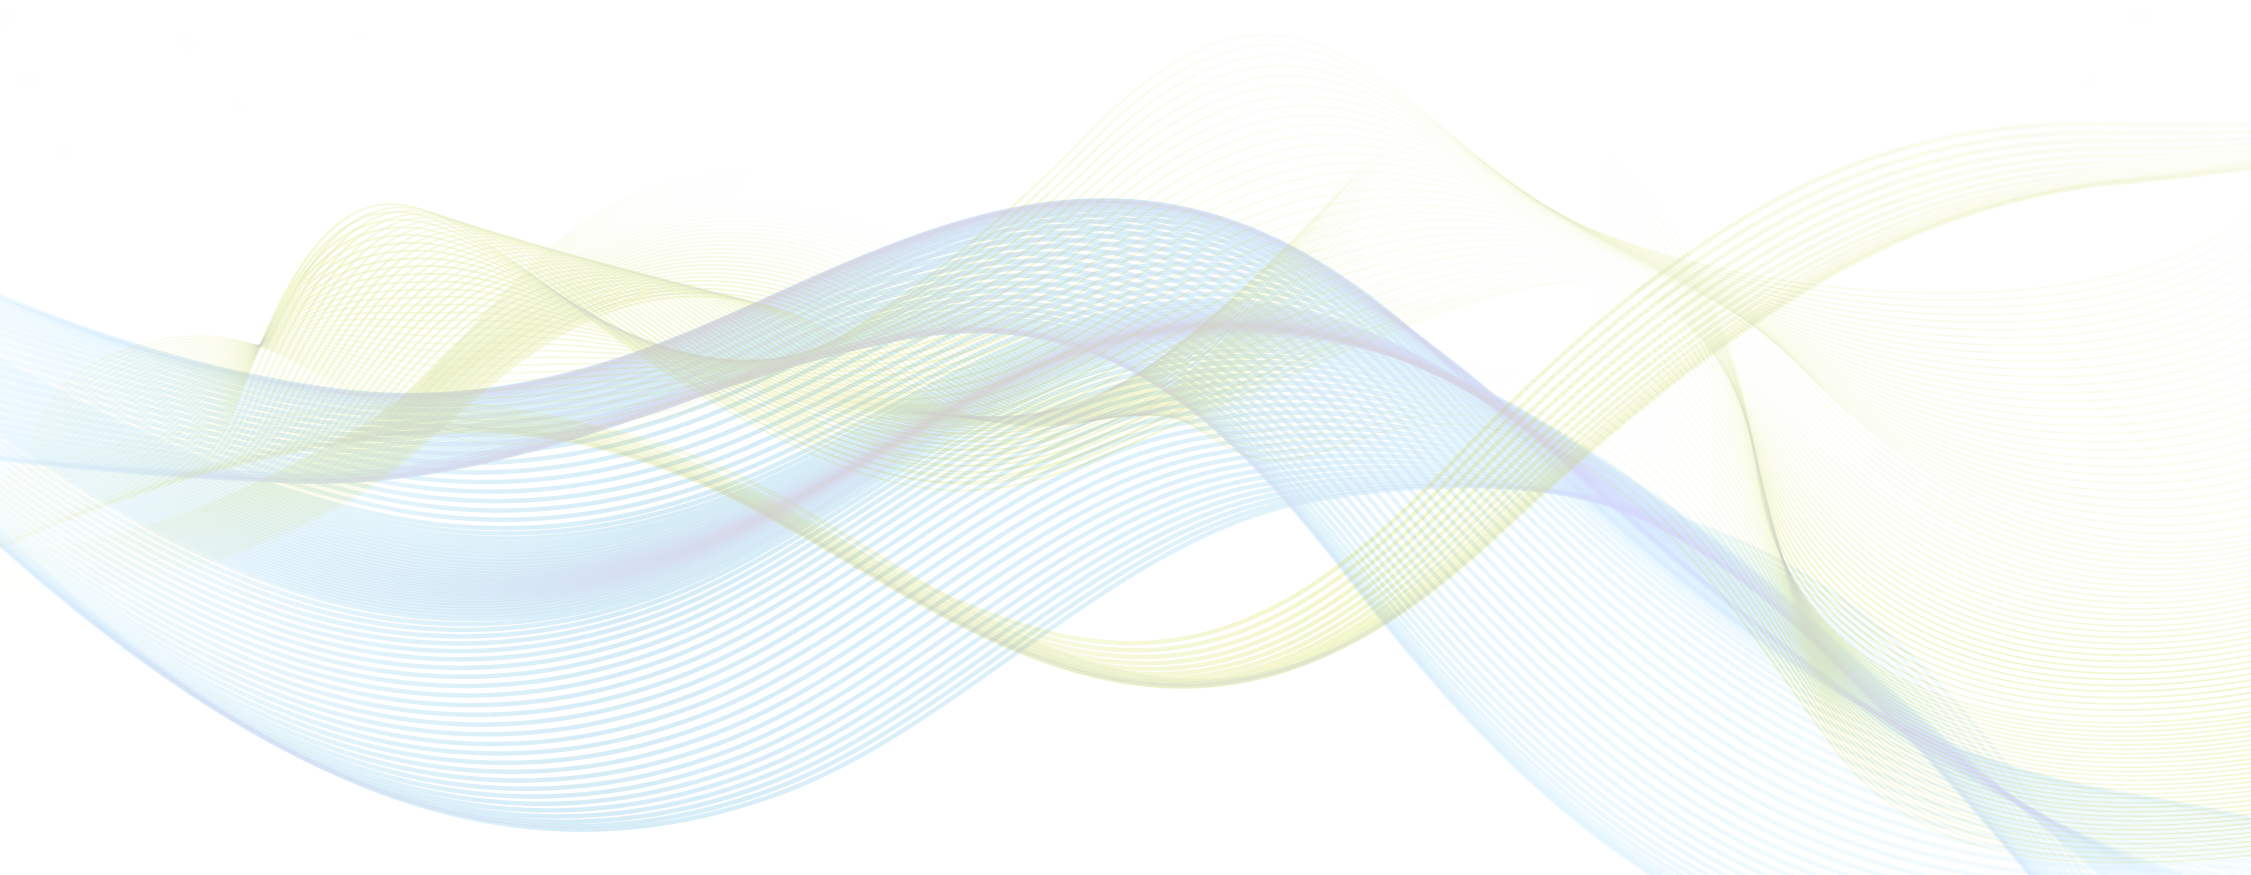 Wave graphic png. Graphics google search waves